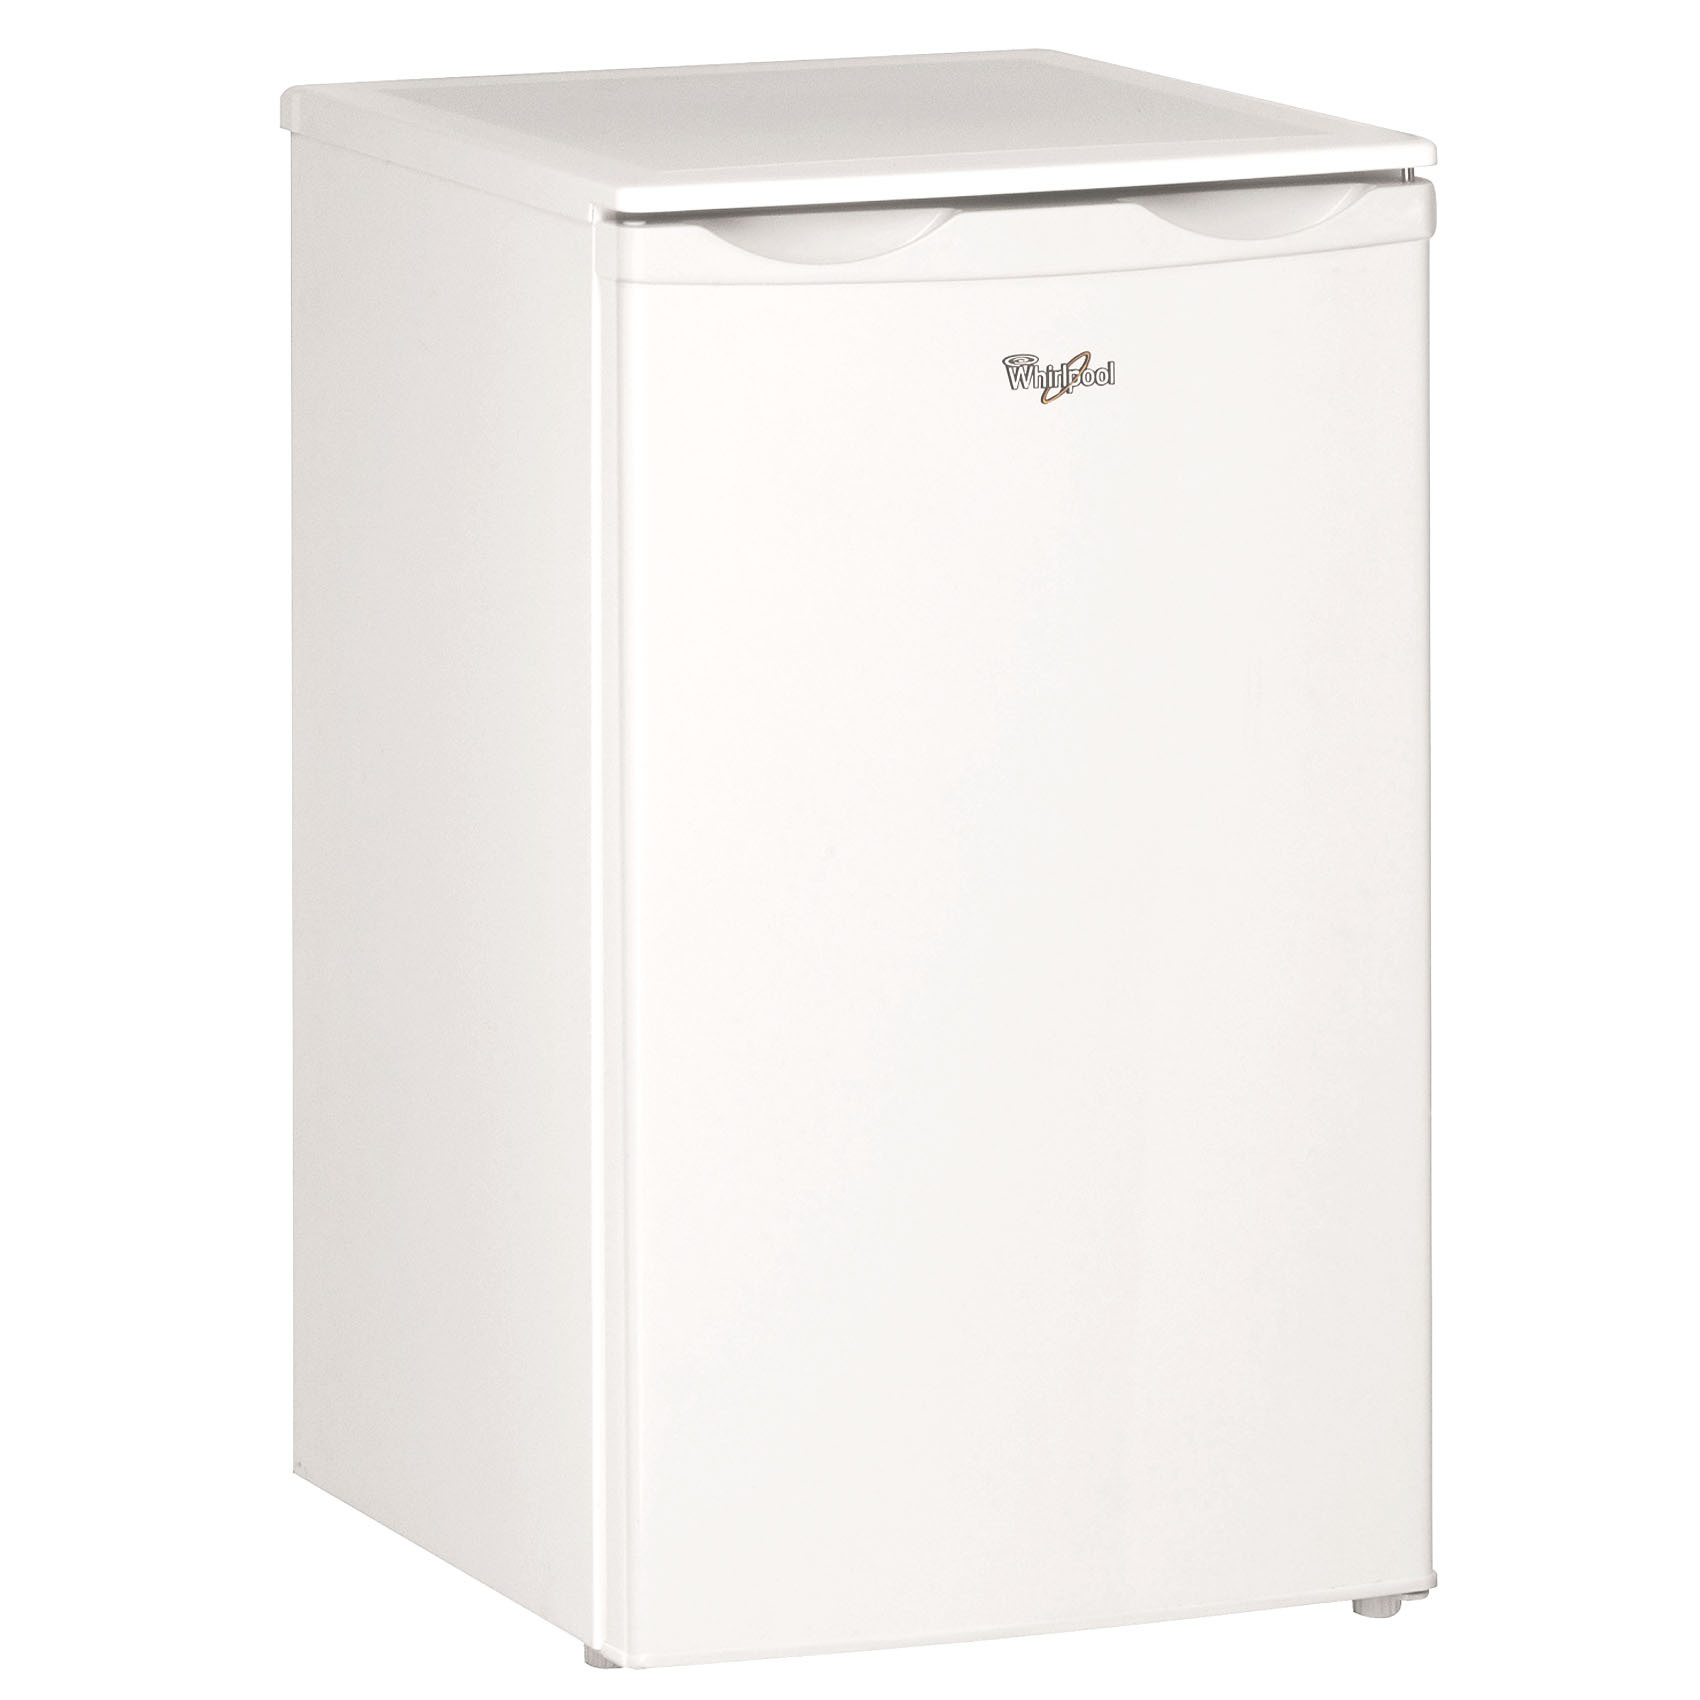 WHIRLPOOL FRIDGE WMT504K 100L